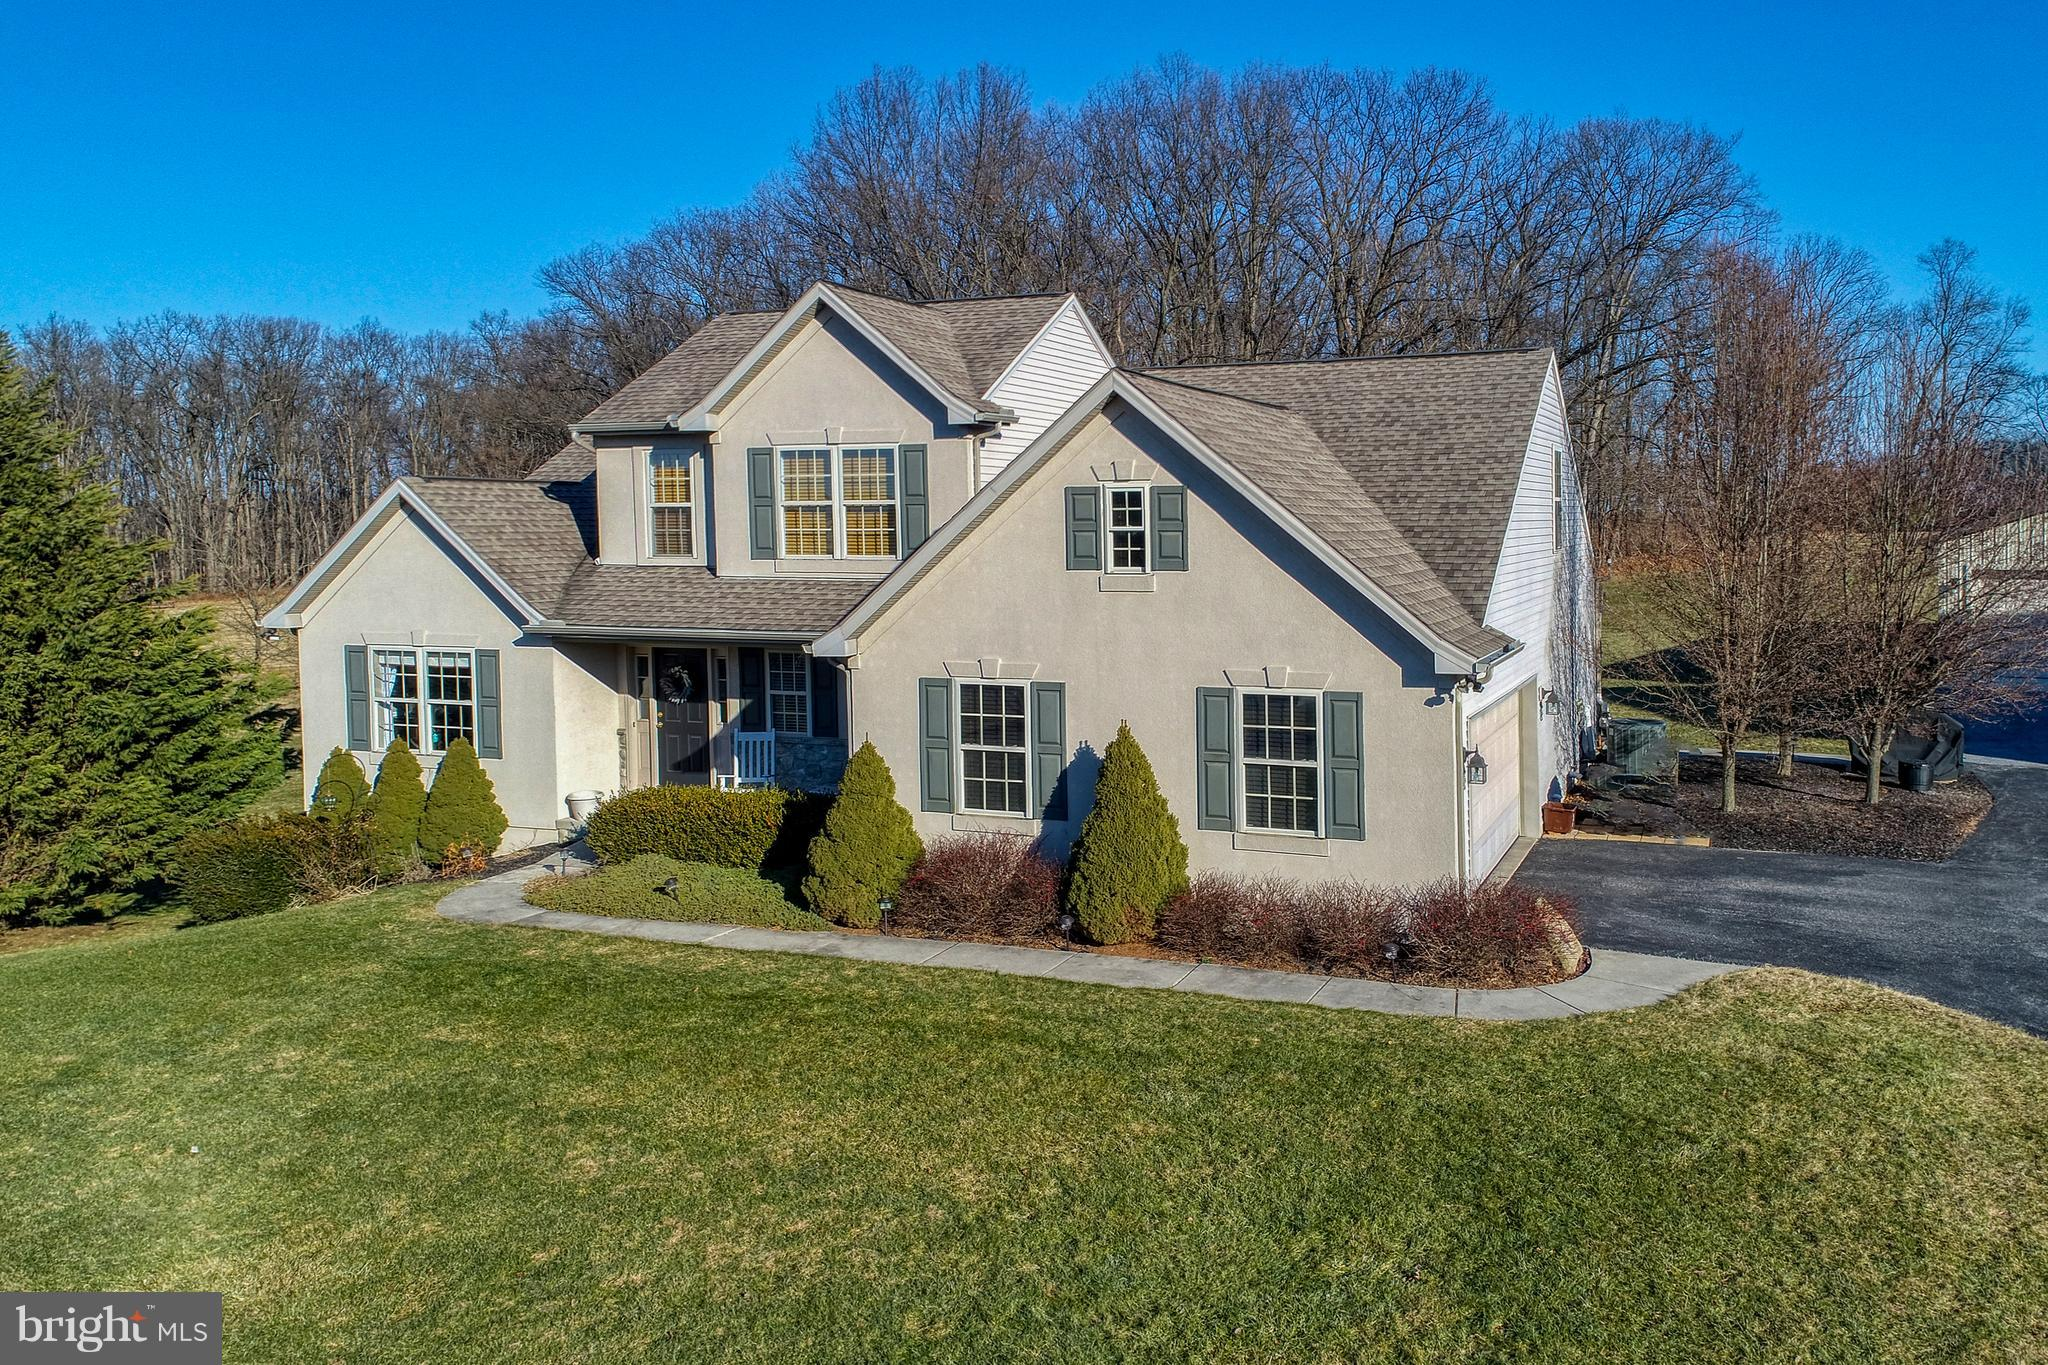 175 WOODSVIEW DRIVE, RED LION, PA 17356